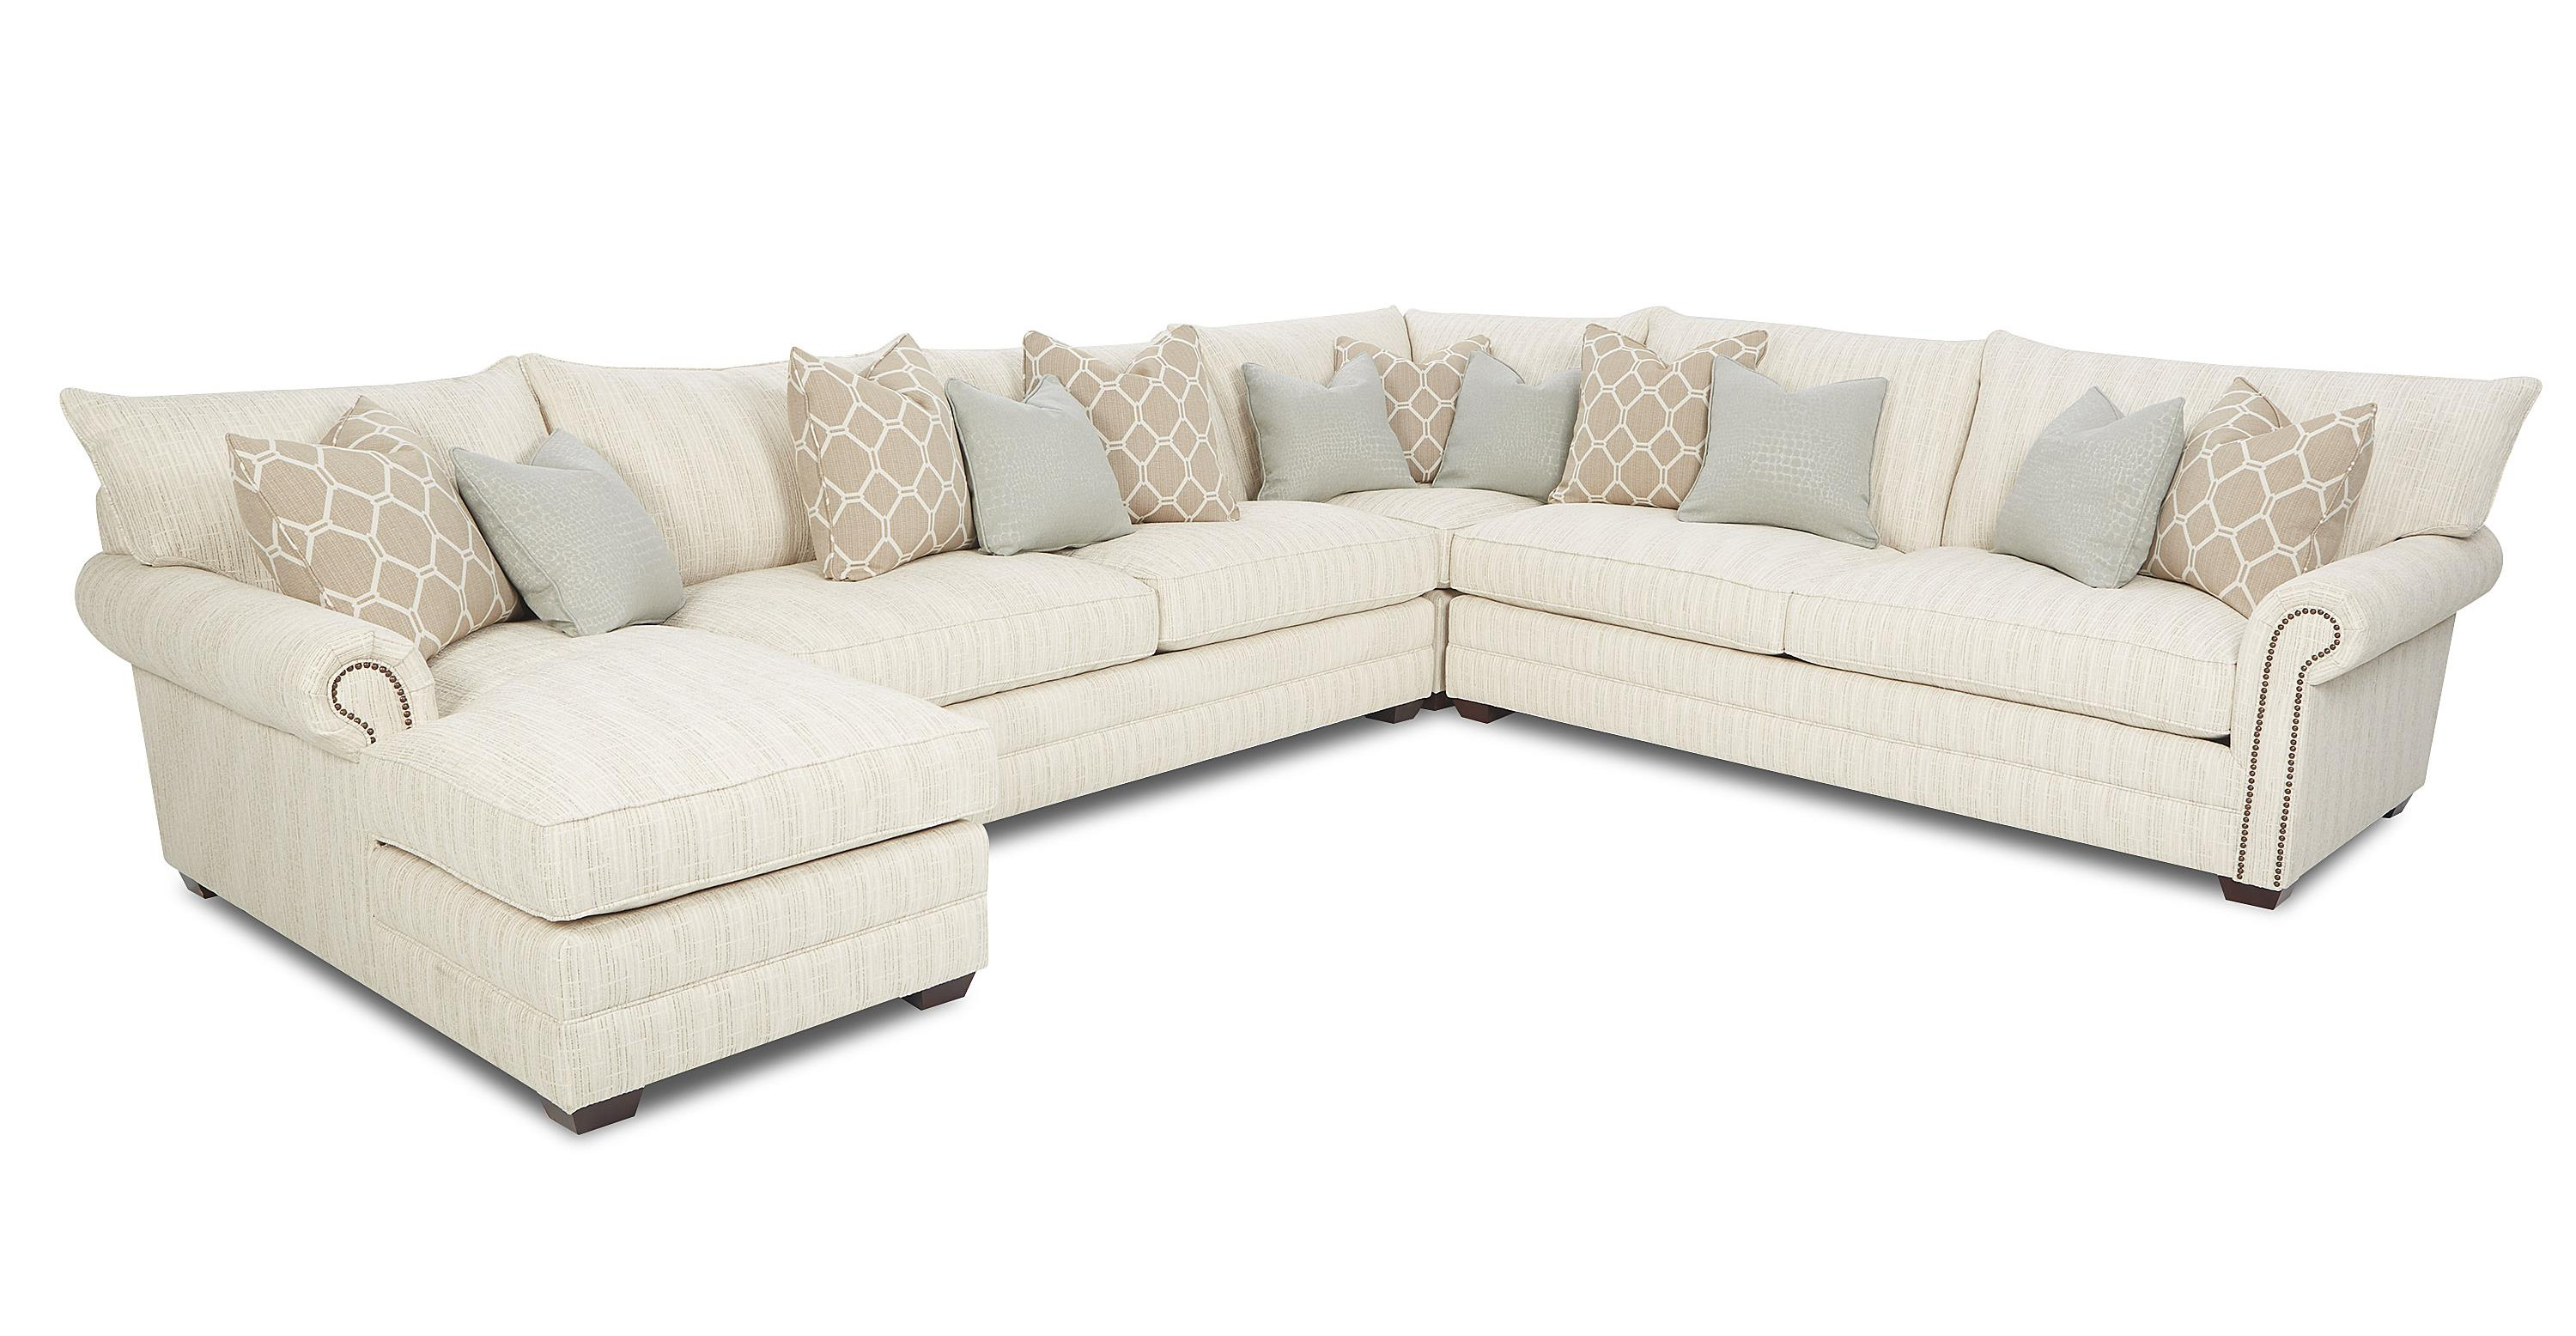 Huntley Traditional Sectional Sofa by Klaussner at Johnny Janosik